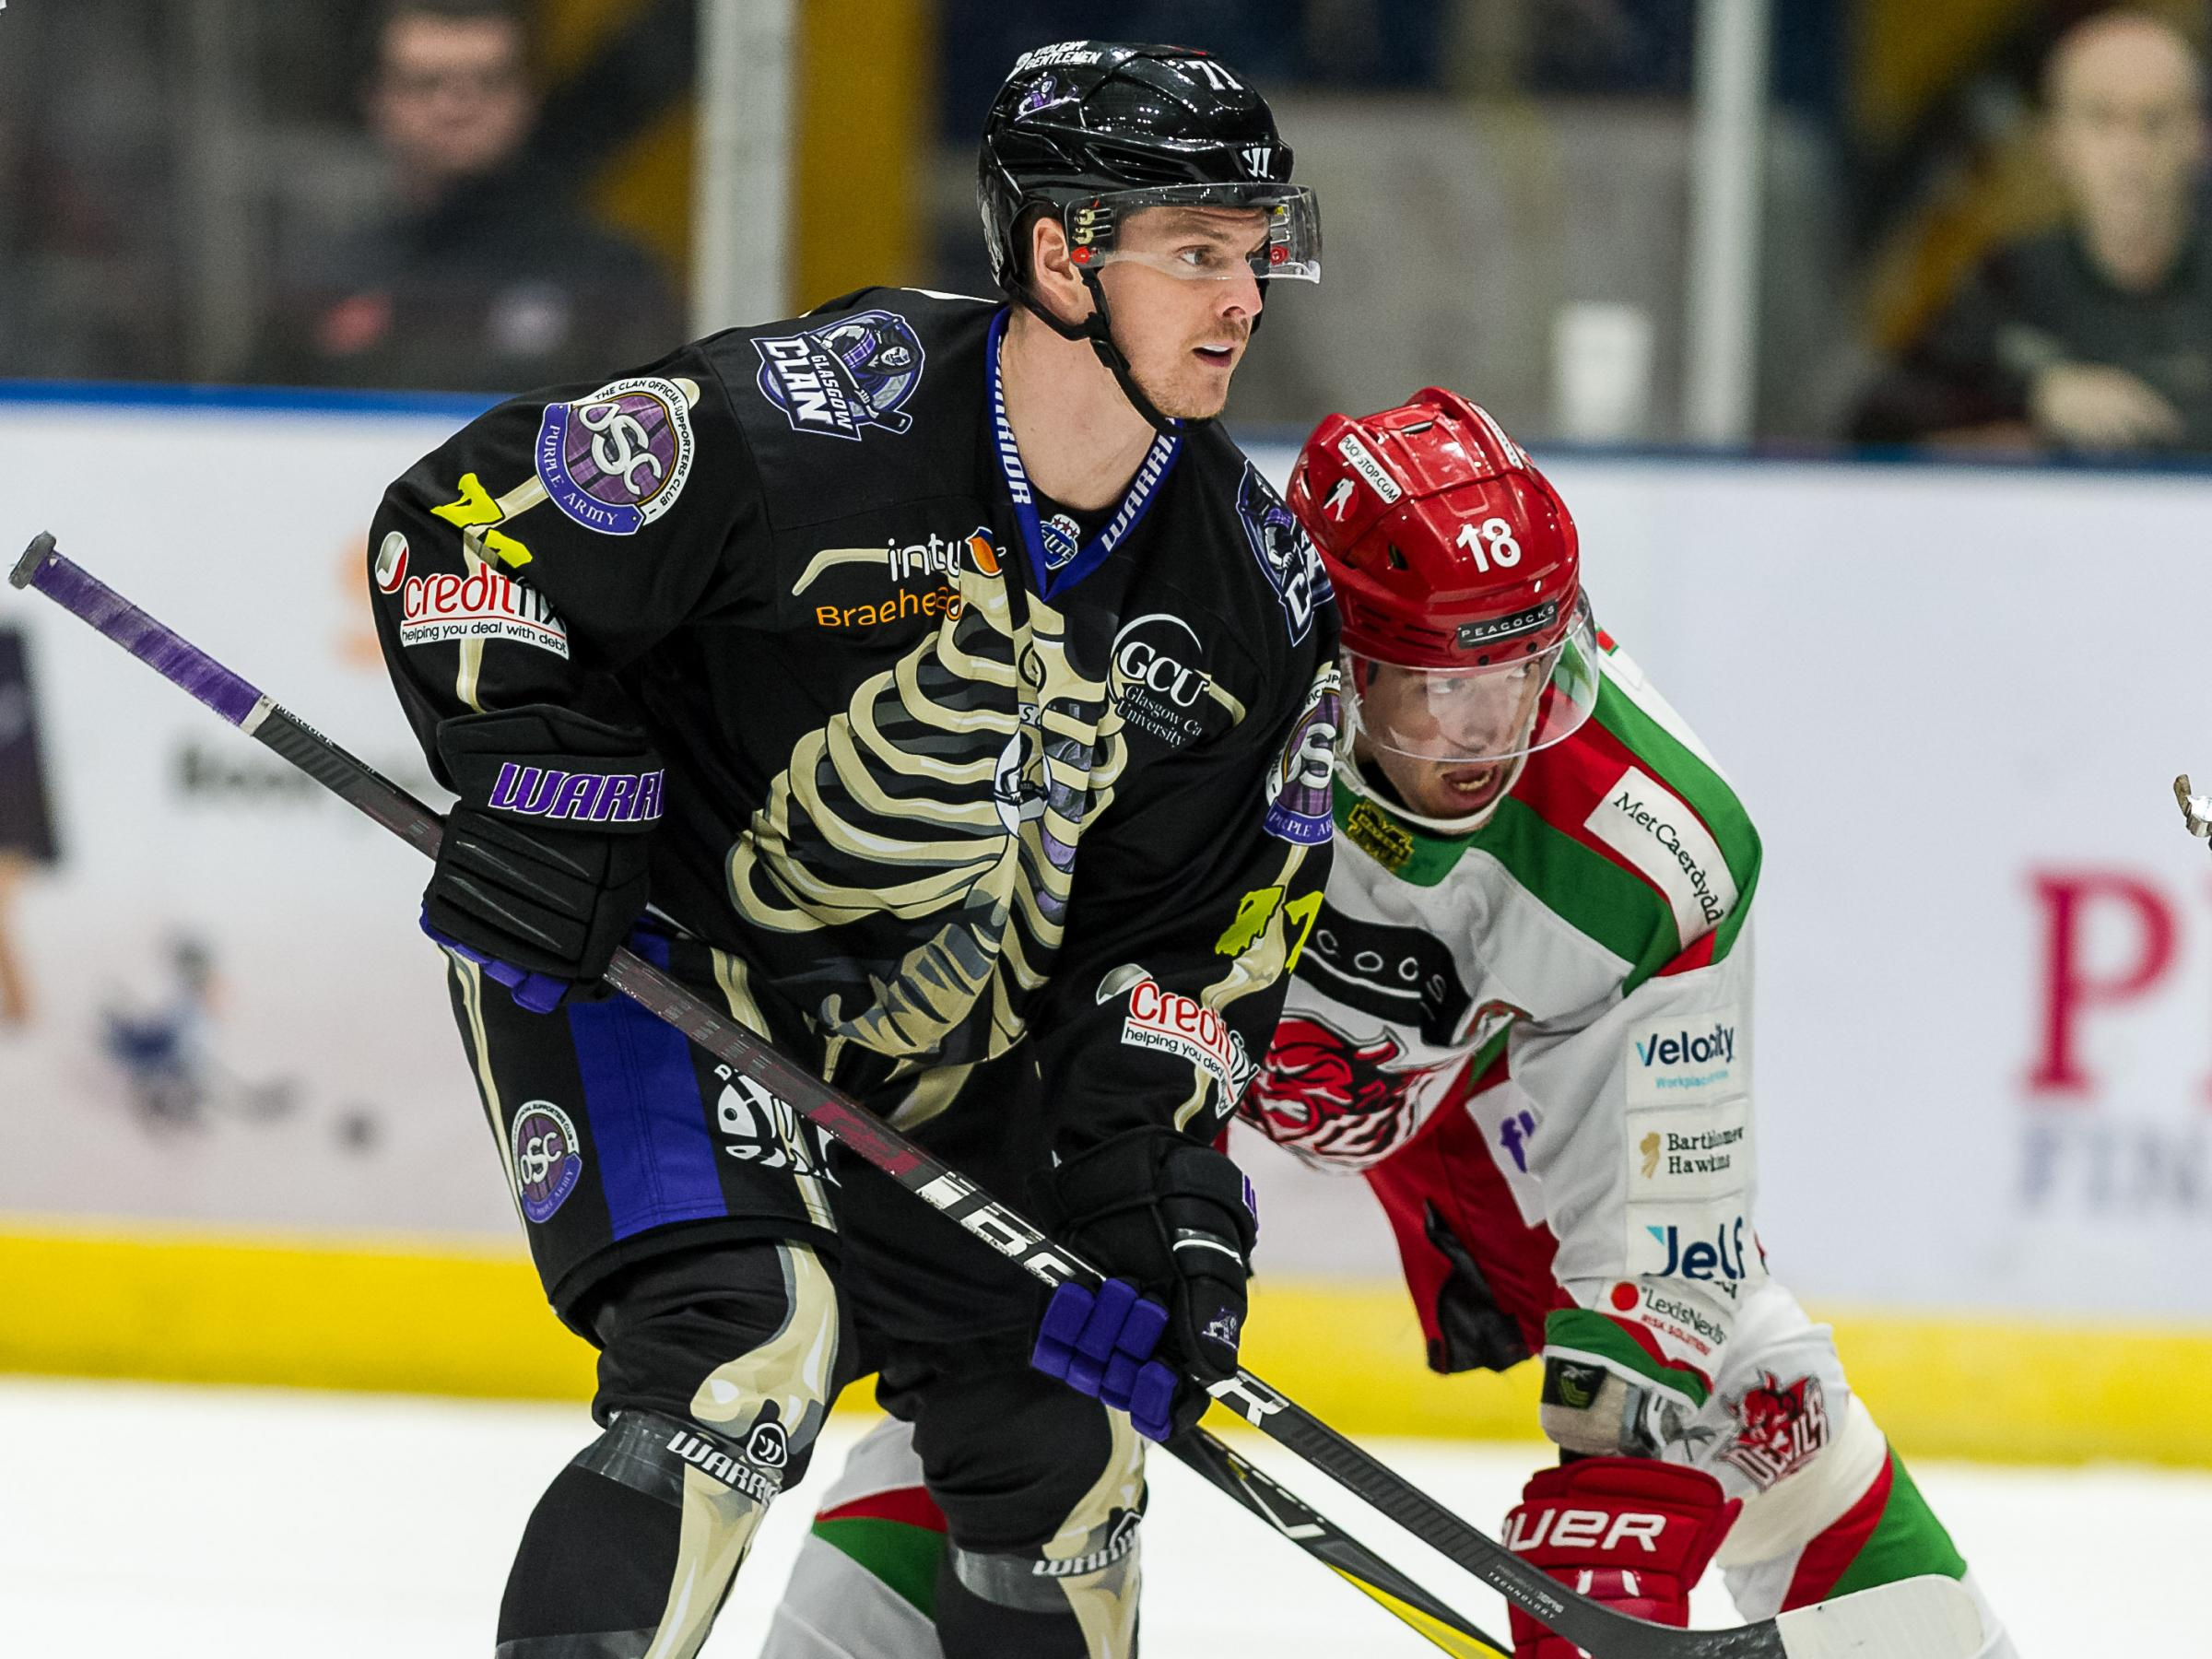 Glasgow Clan narrowly defeated 0-1 by Cardiff Devils at Braehead Arena on  ,31 October 2018, Picture: Al Goold (www.algooldphoto.com)